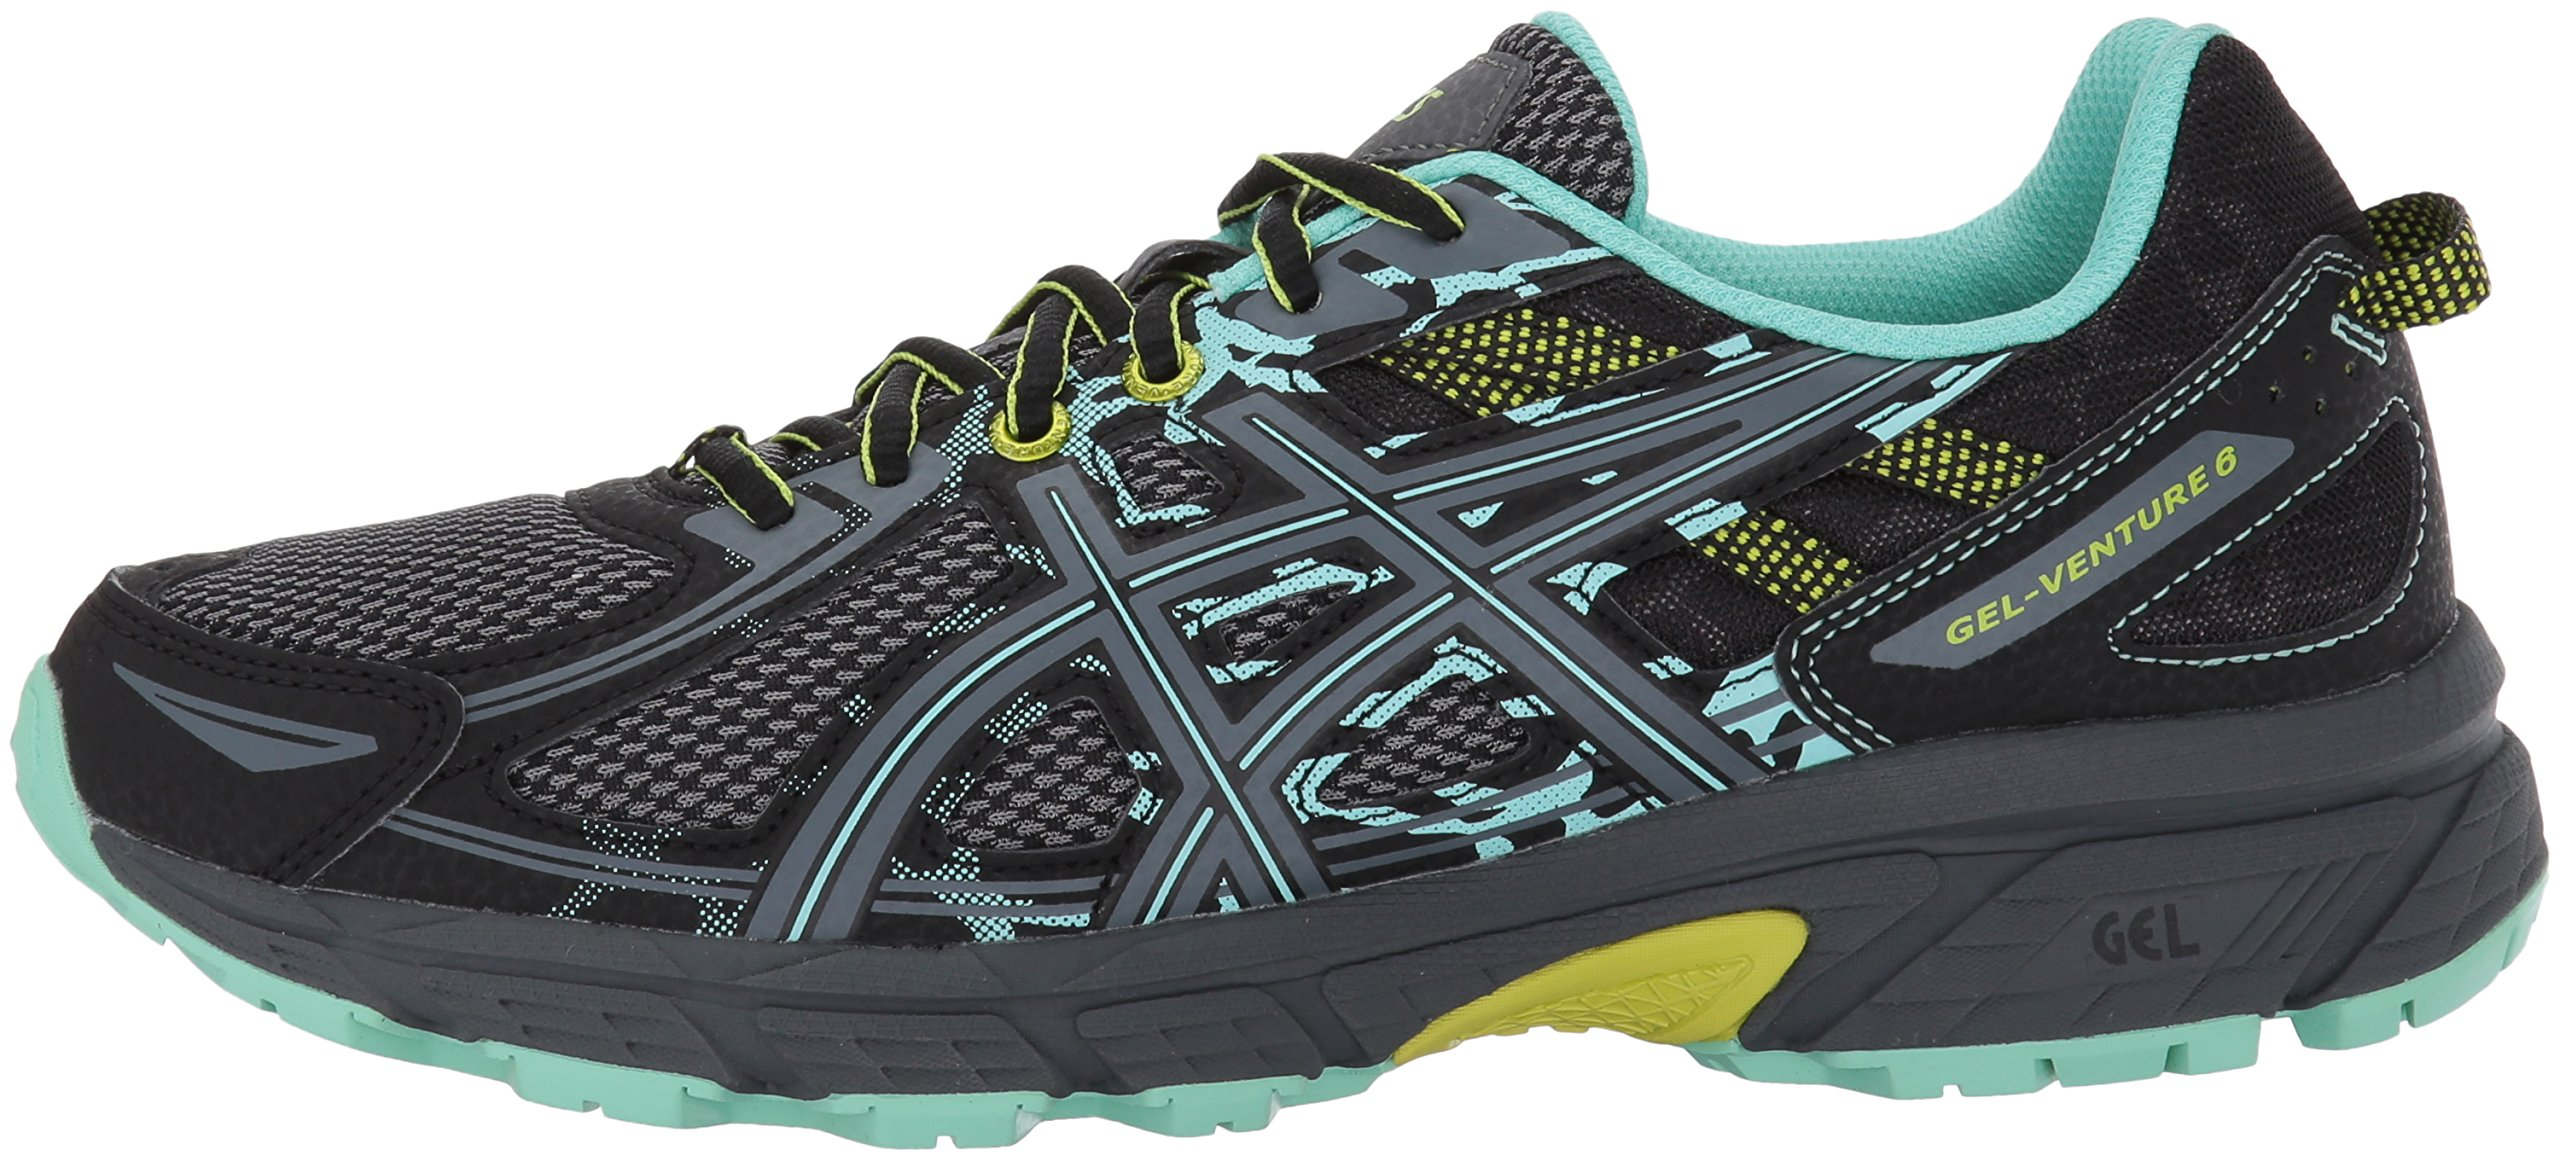 ASICS Women's Gel-Venture 6 Running-Shoes,Black/Carbon/Neon Lime,5 Medium US by ASICS (Image #5)